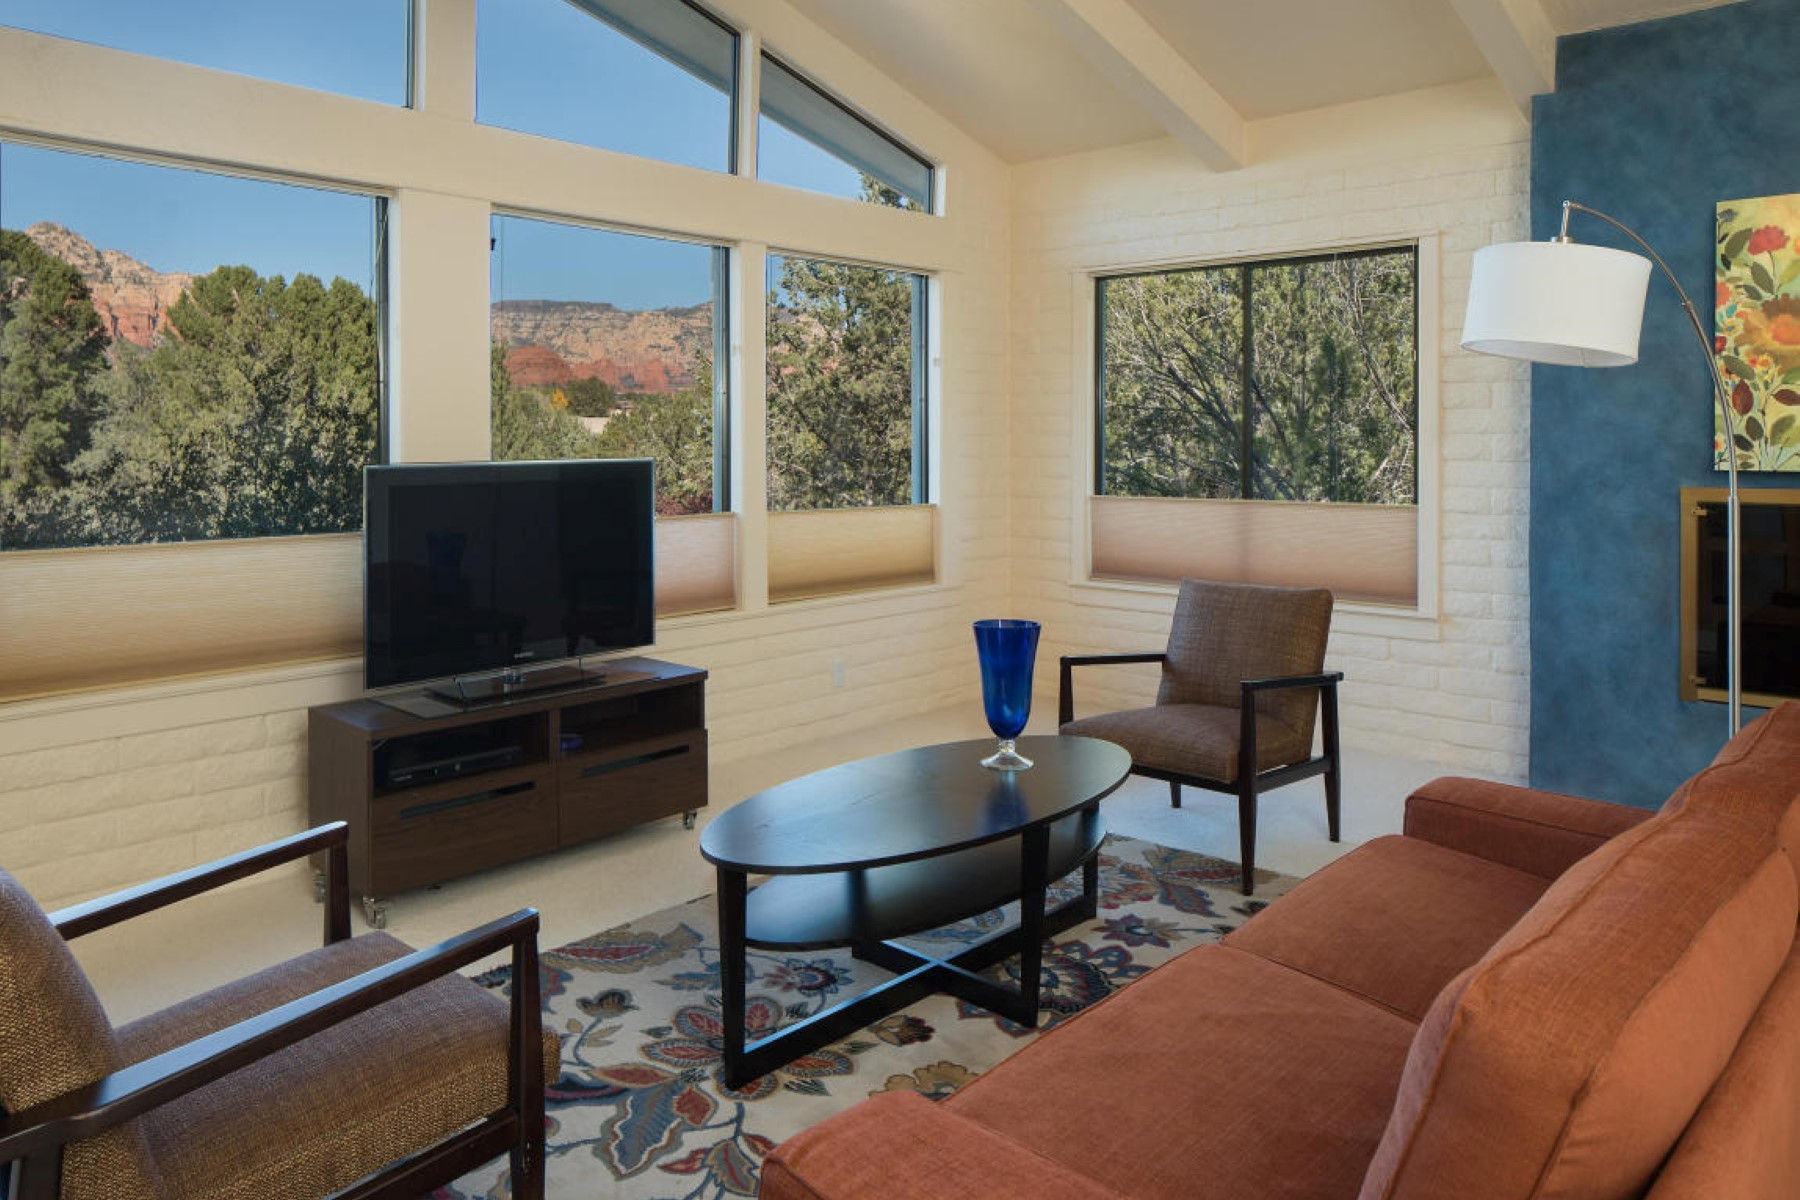 Single Family Home for Sale at Charming updated West Sedona home featuring red rock views 2700 Prairie Falcon Drive Sedona, Arizona, 86336 United States